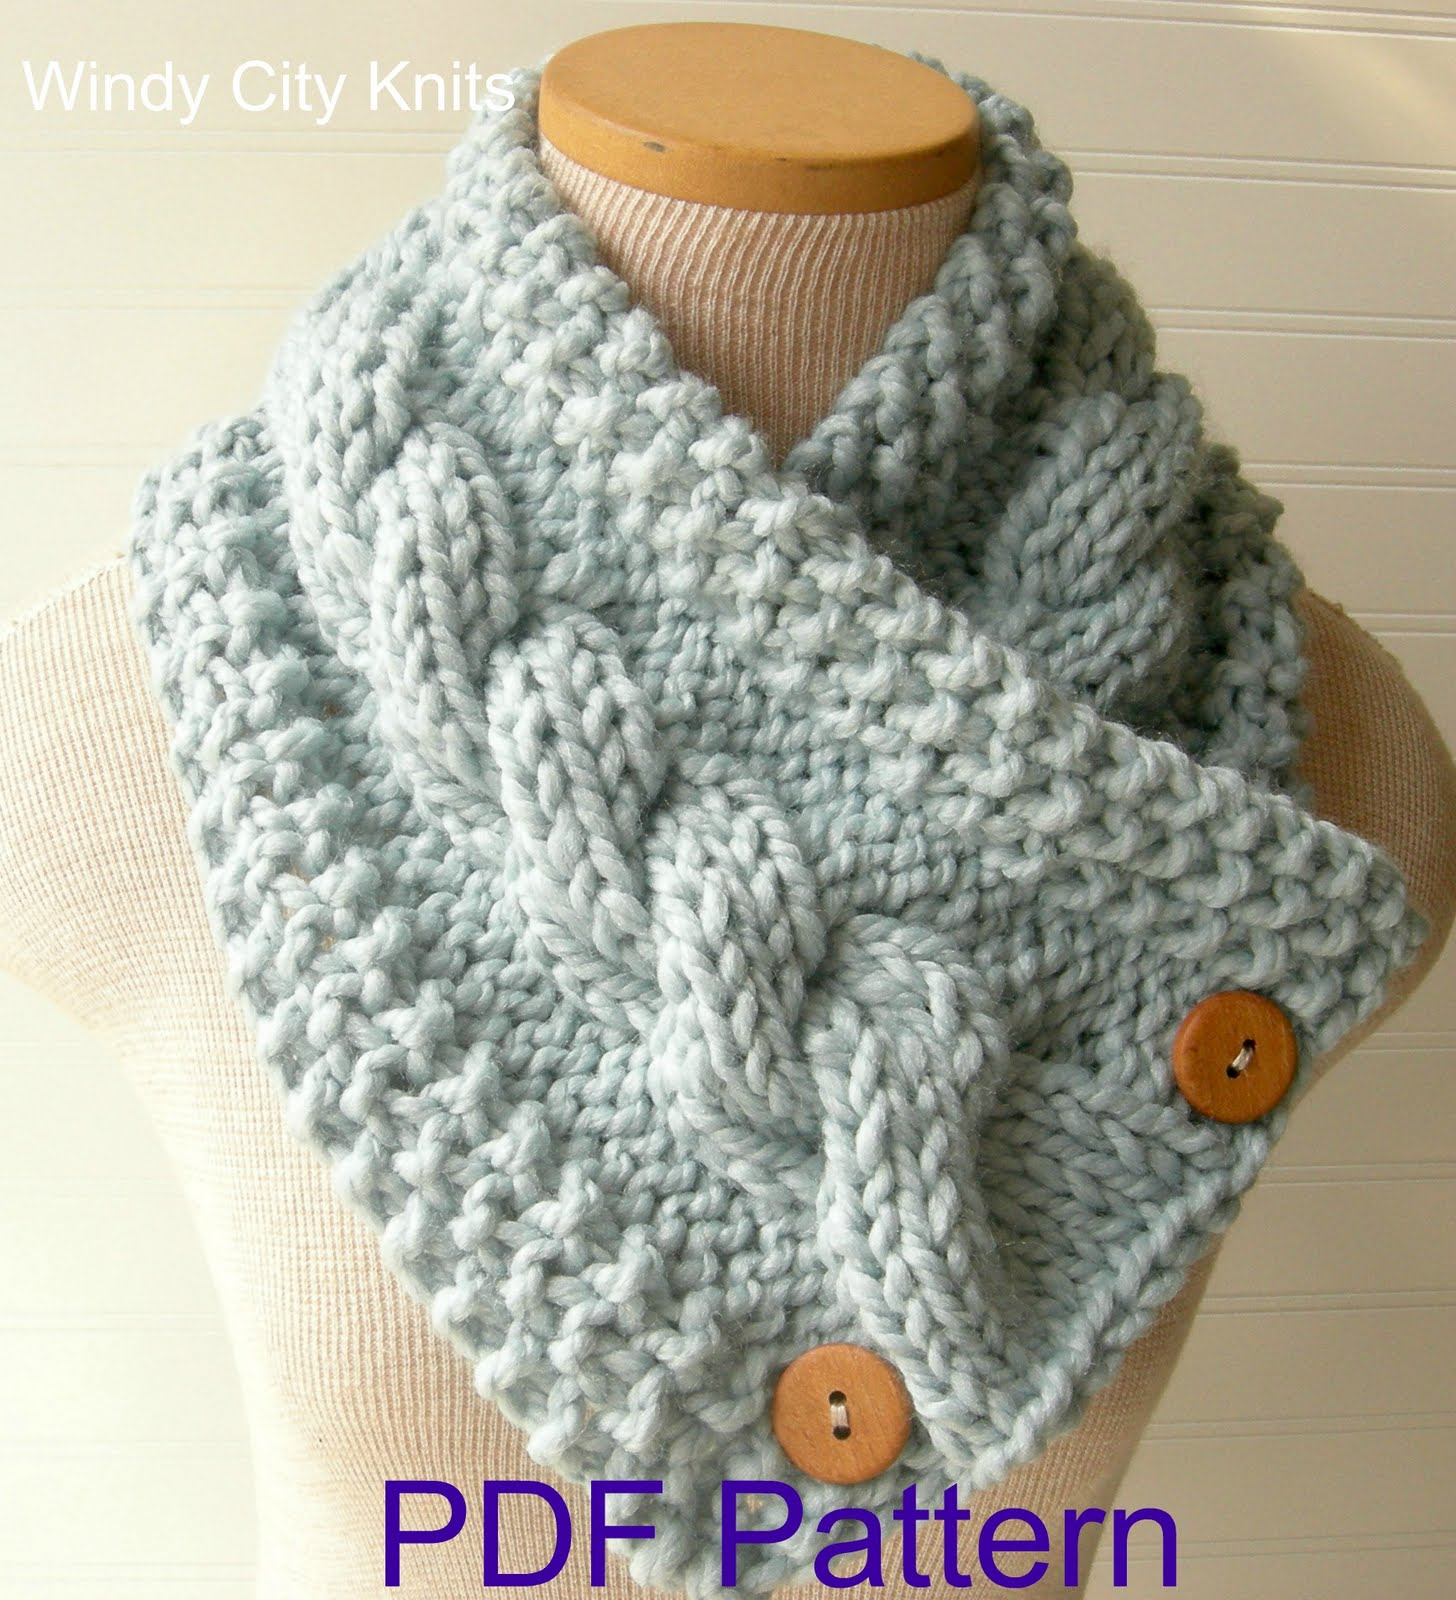 Knit Cowl Scarf Pattern Windycityknits Knit Cable Cowl Scarf Pattern Pdf